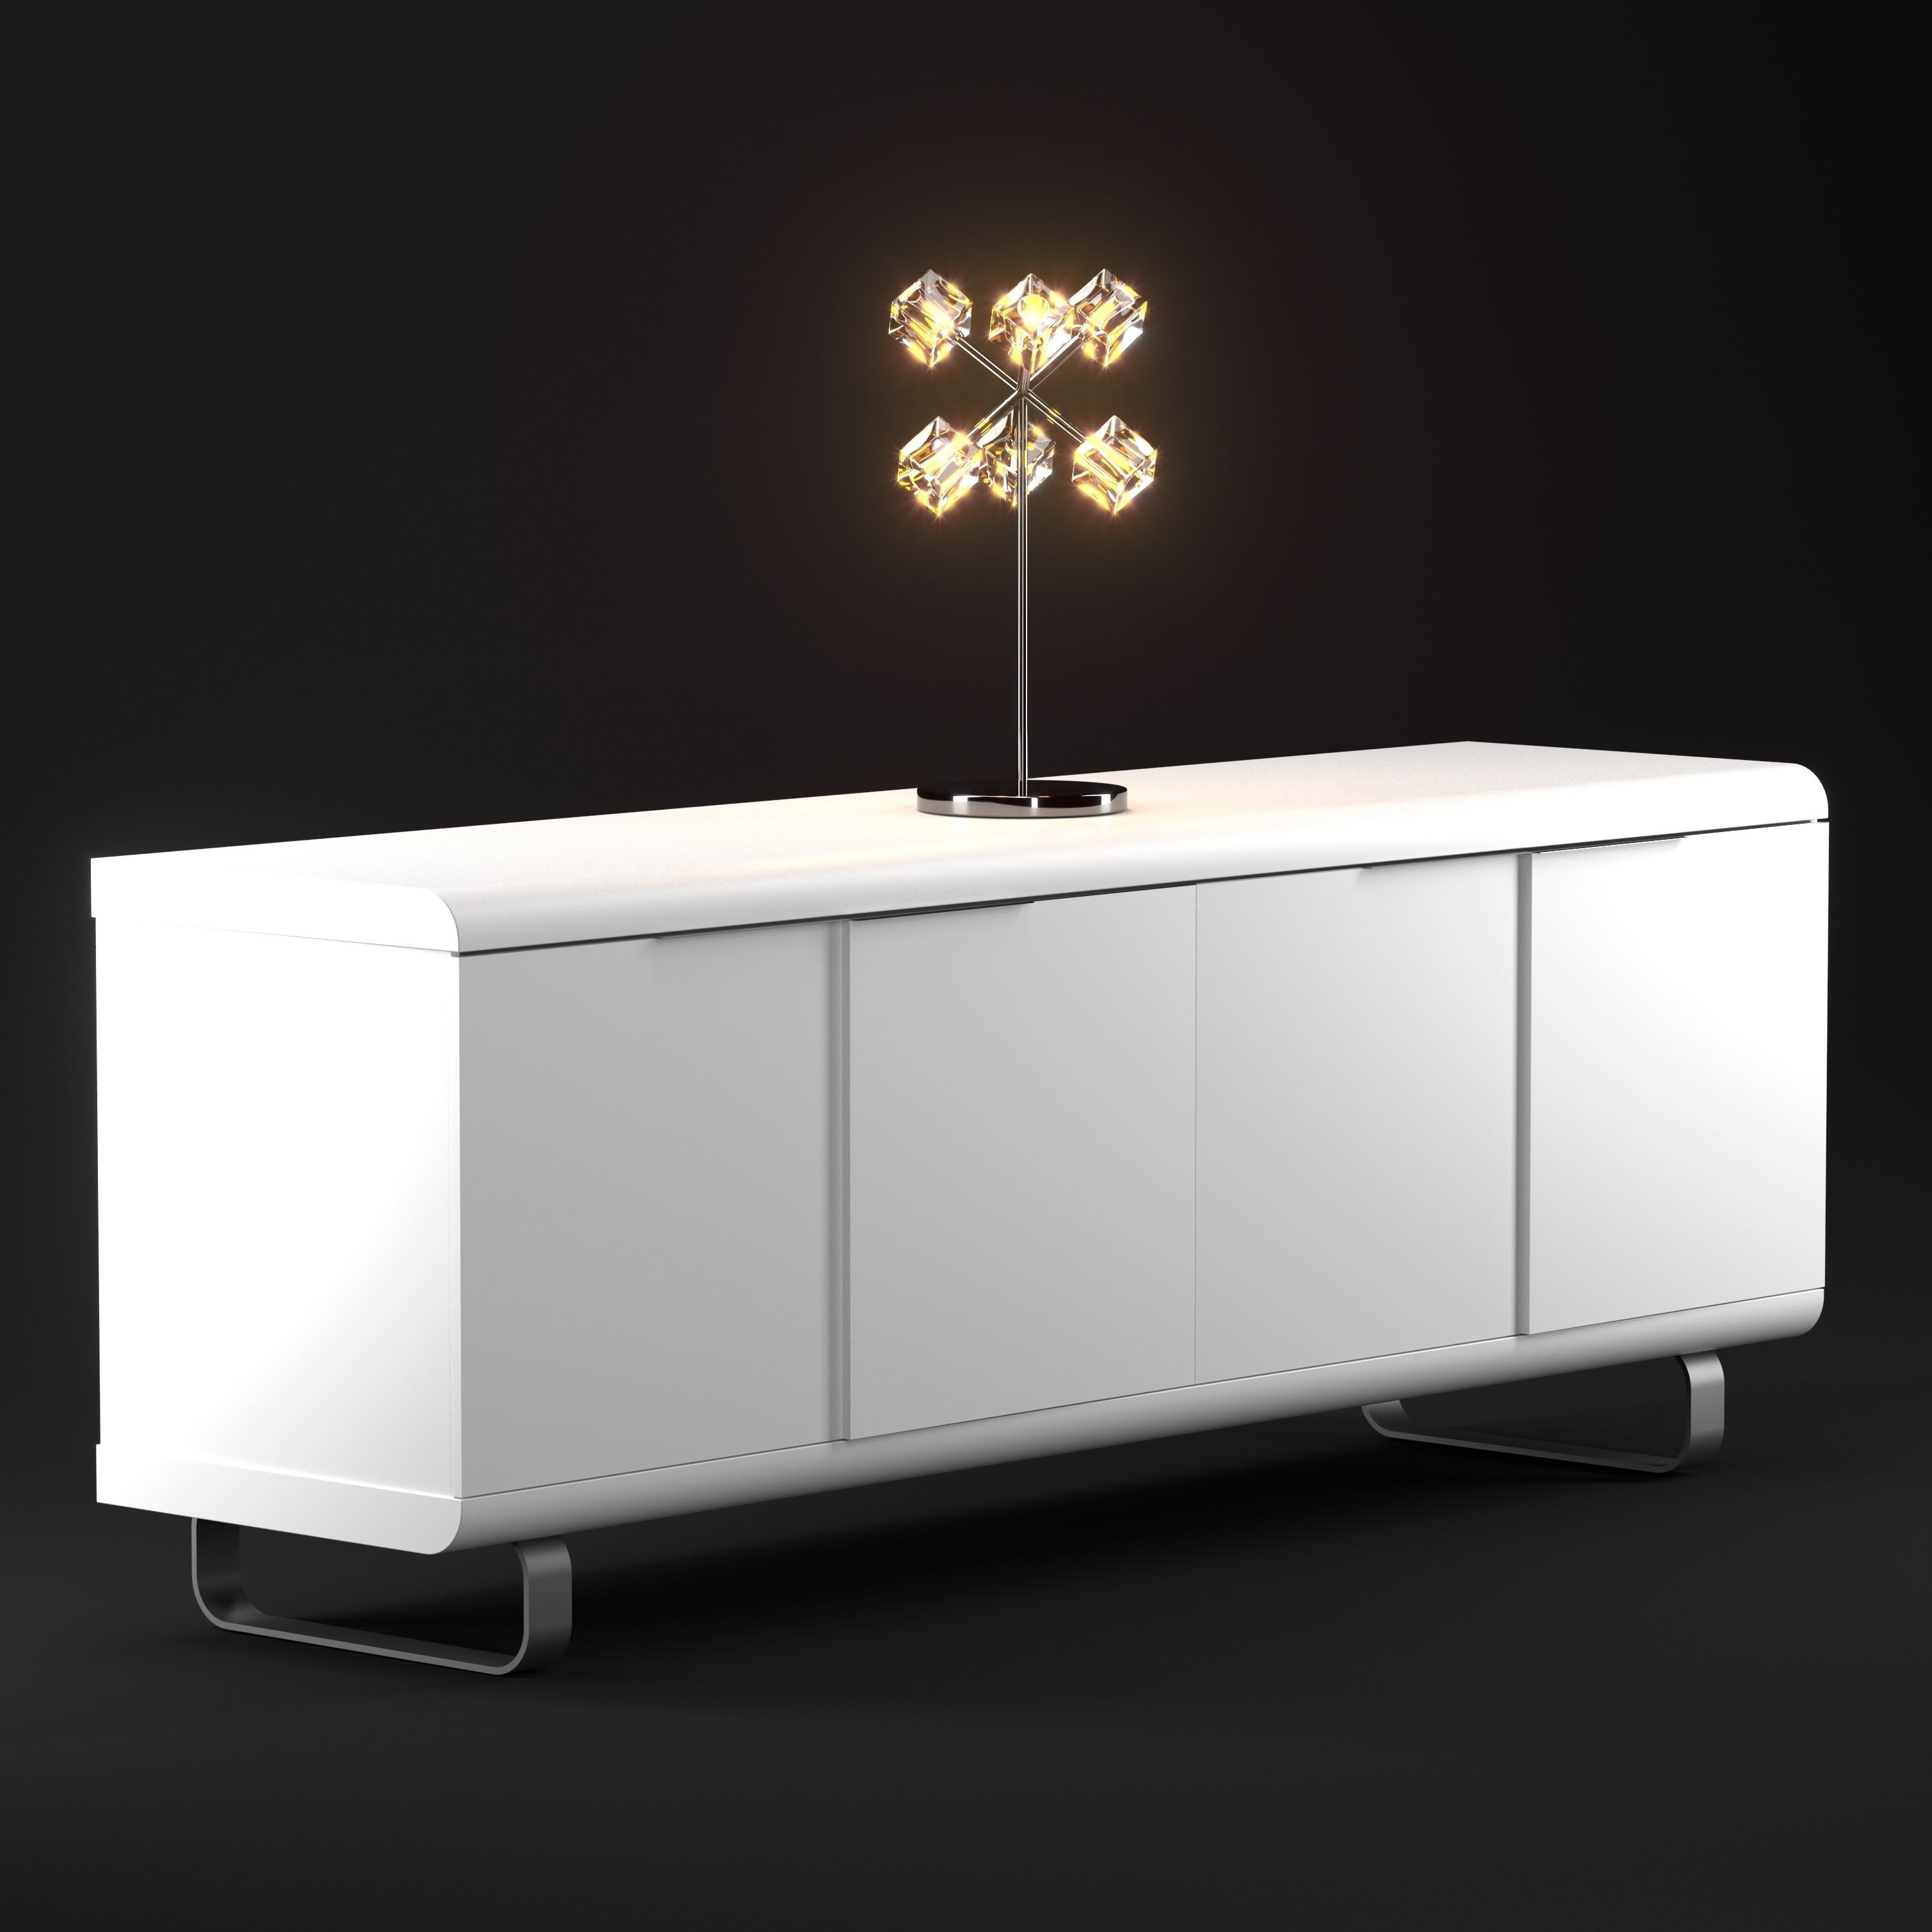 Cubic Sideboard for your interior livingroom